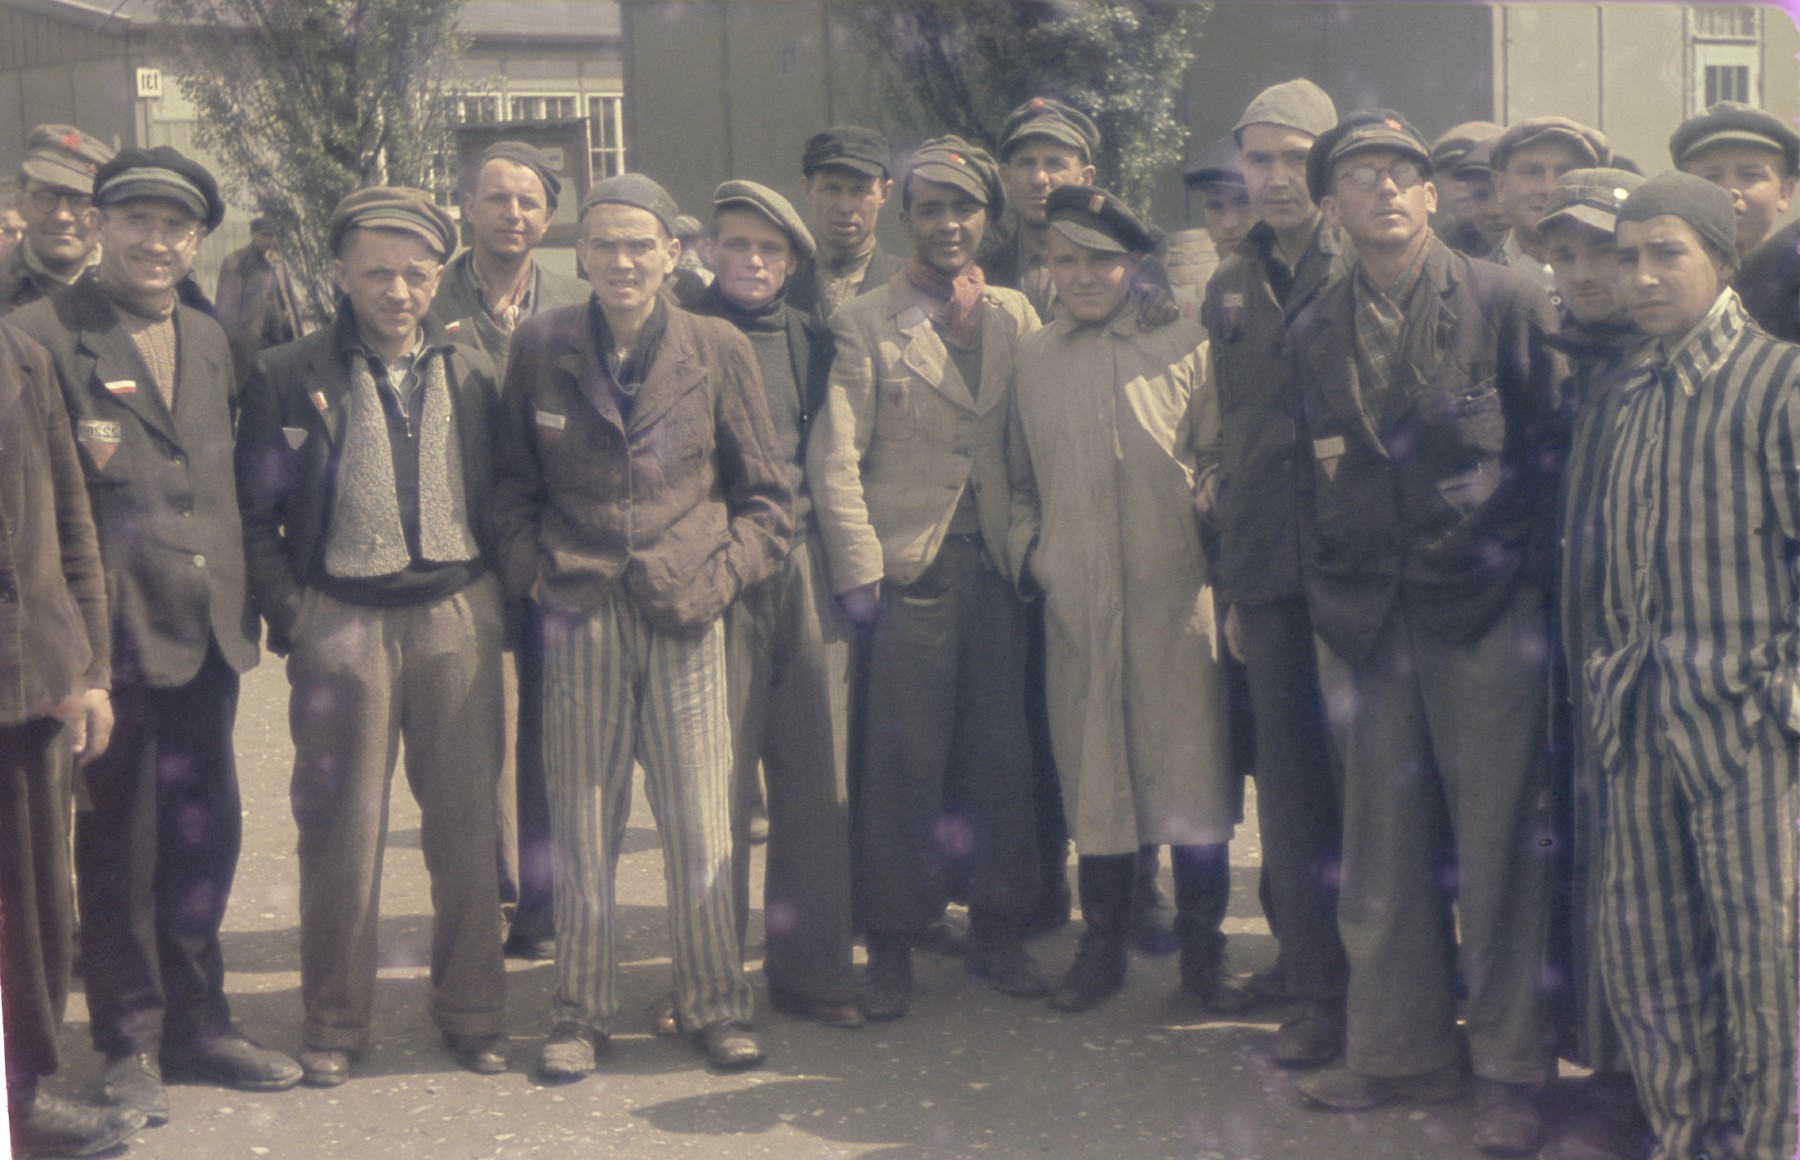 Group portrait of former political prisoners in the newly liberated Dachau concentration camp.